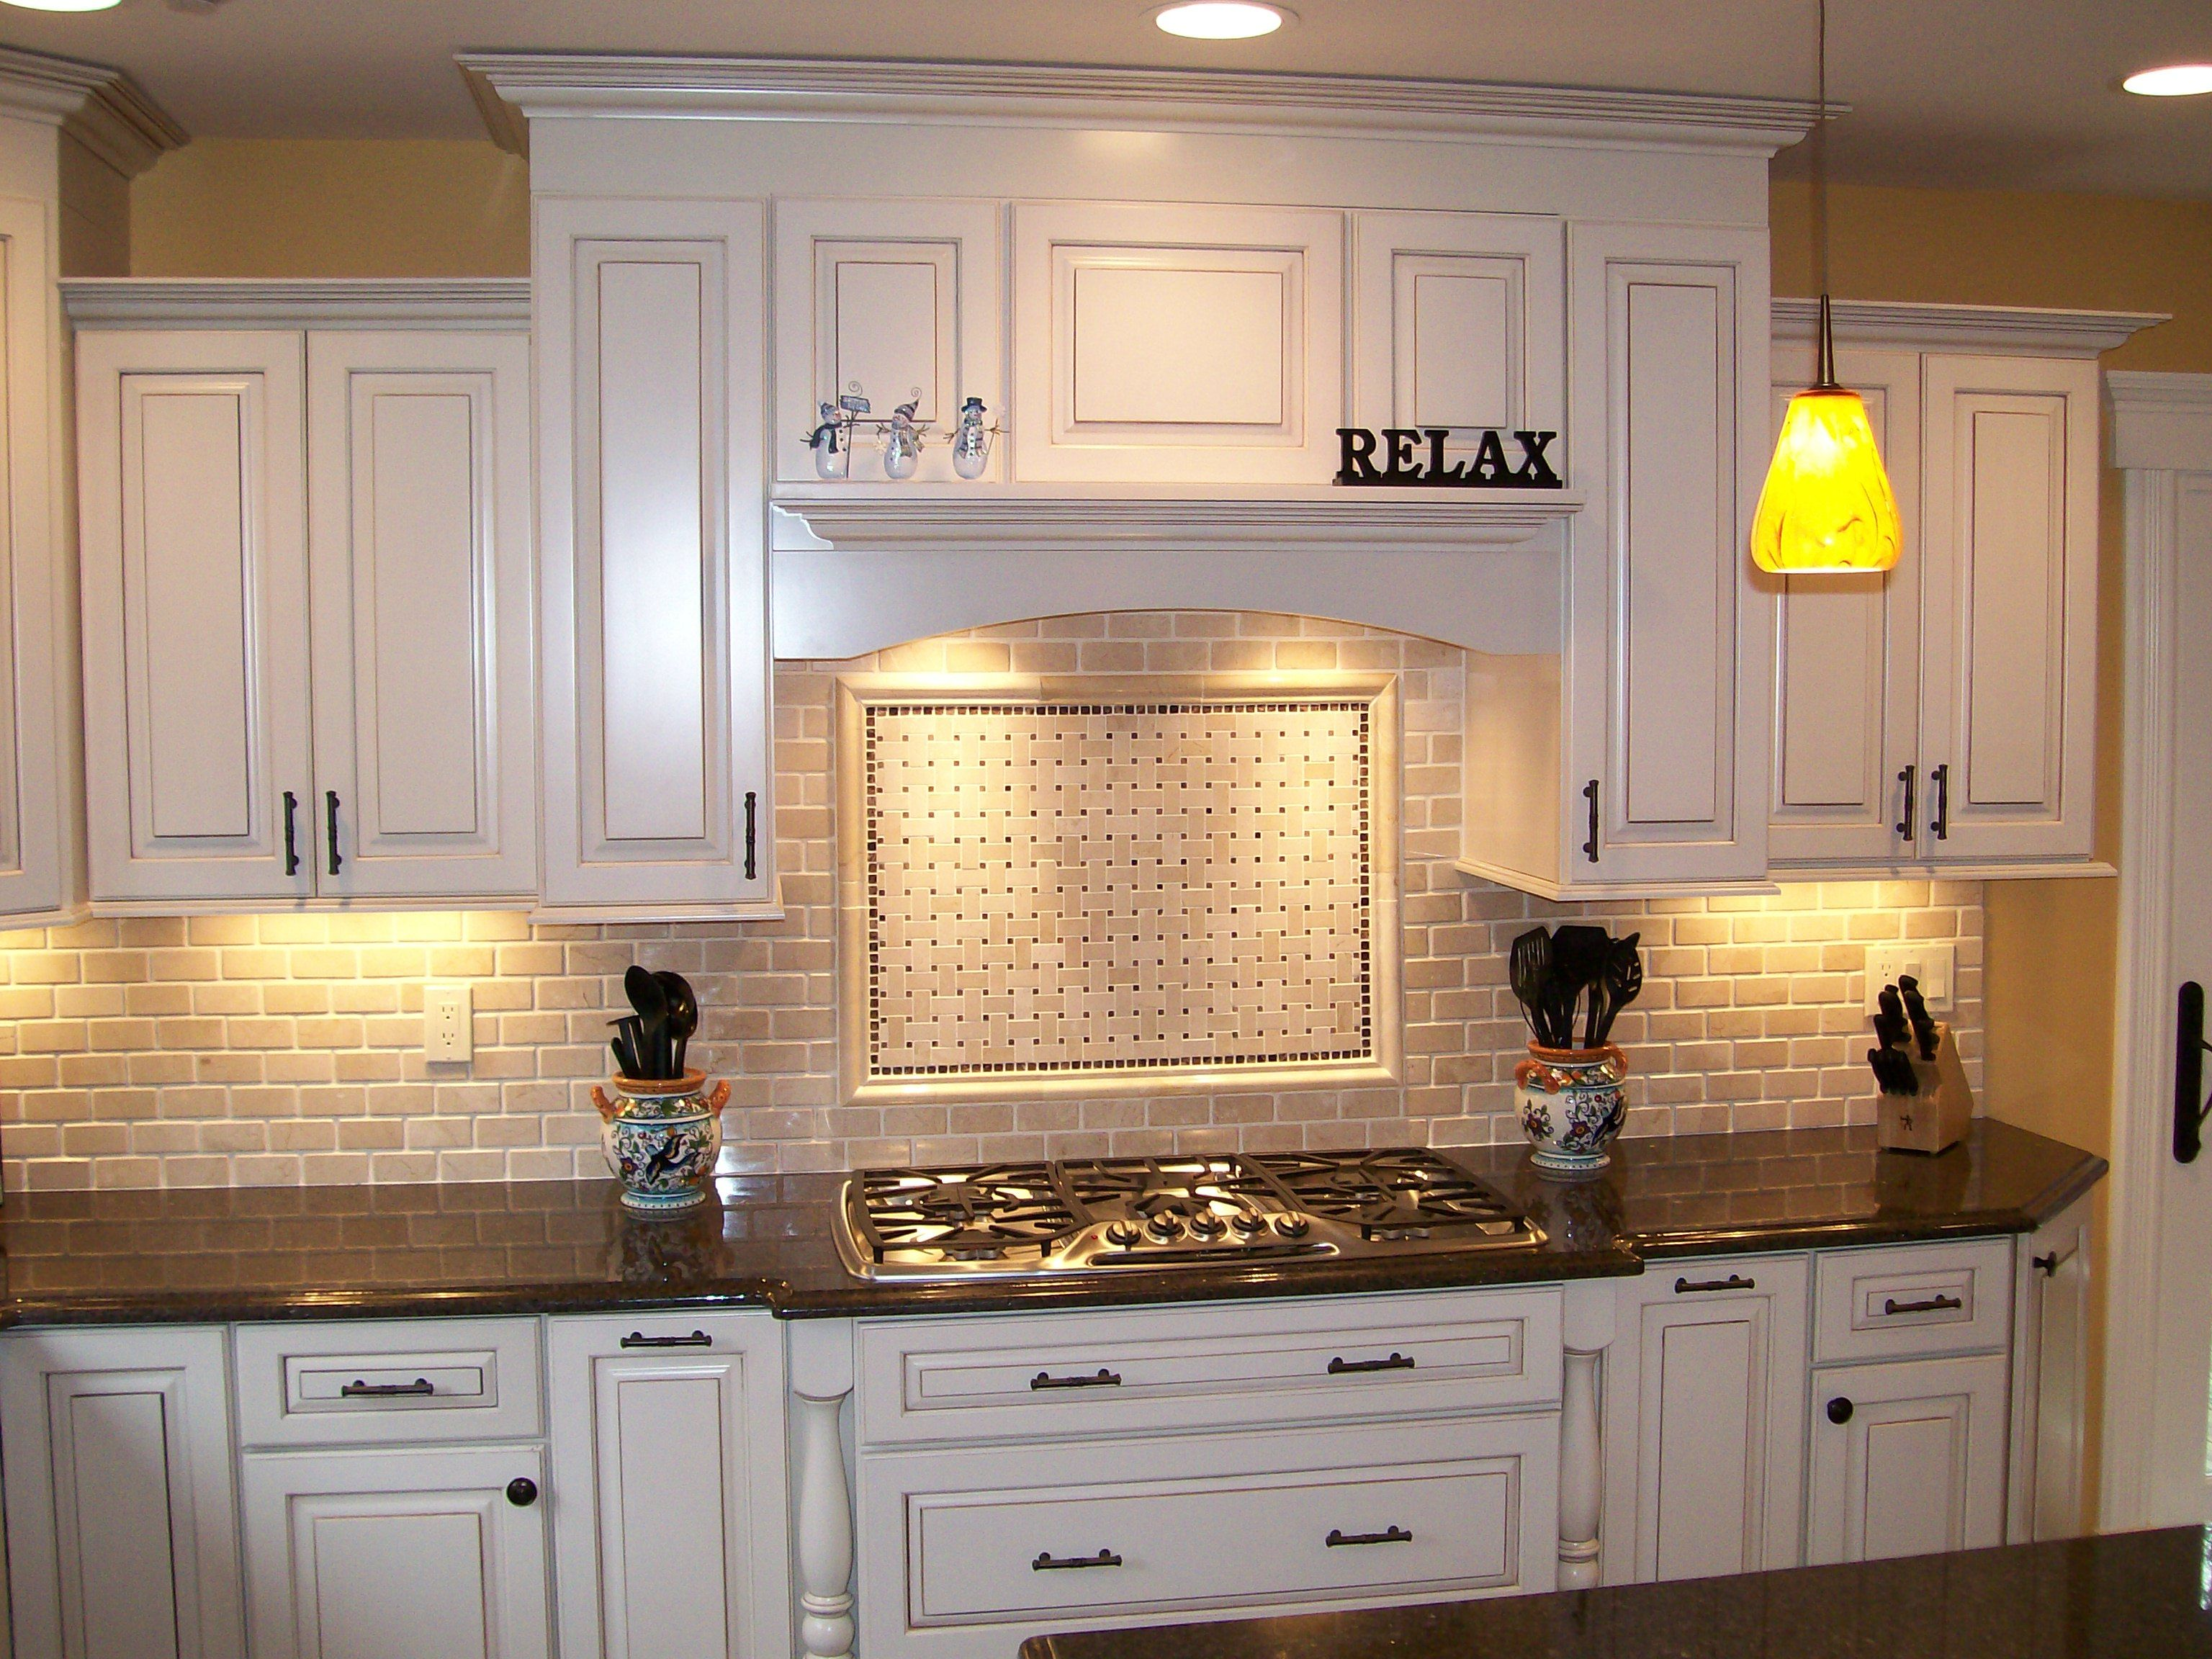 kitchen backsplash ideas with white cabinets warm design white cabinets kitchen backsplash ideas designs with brown SVWAFZD